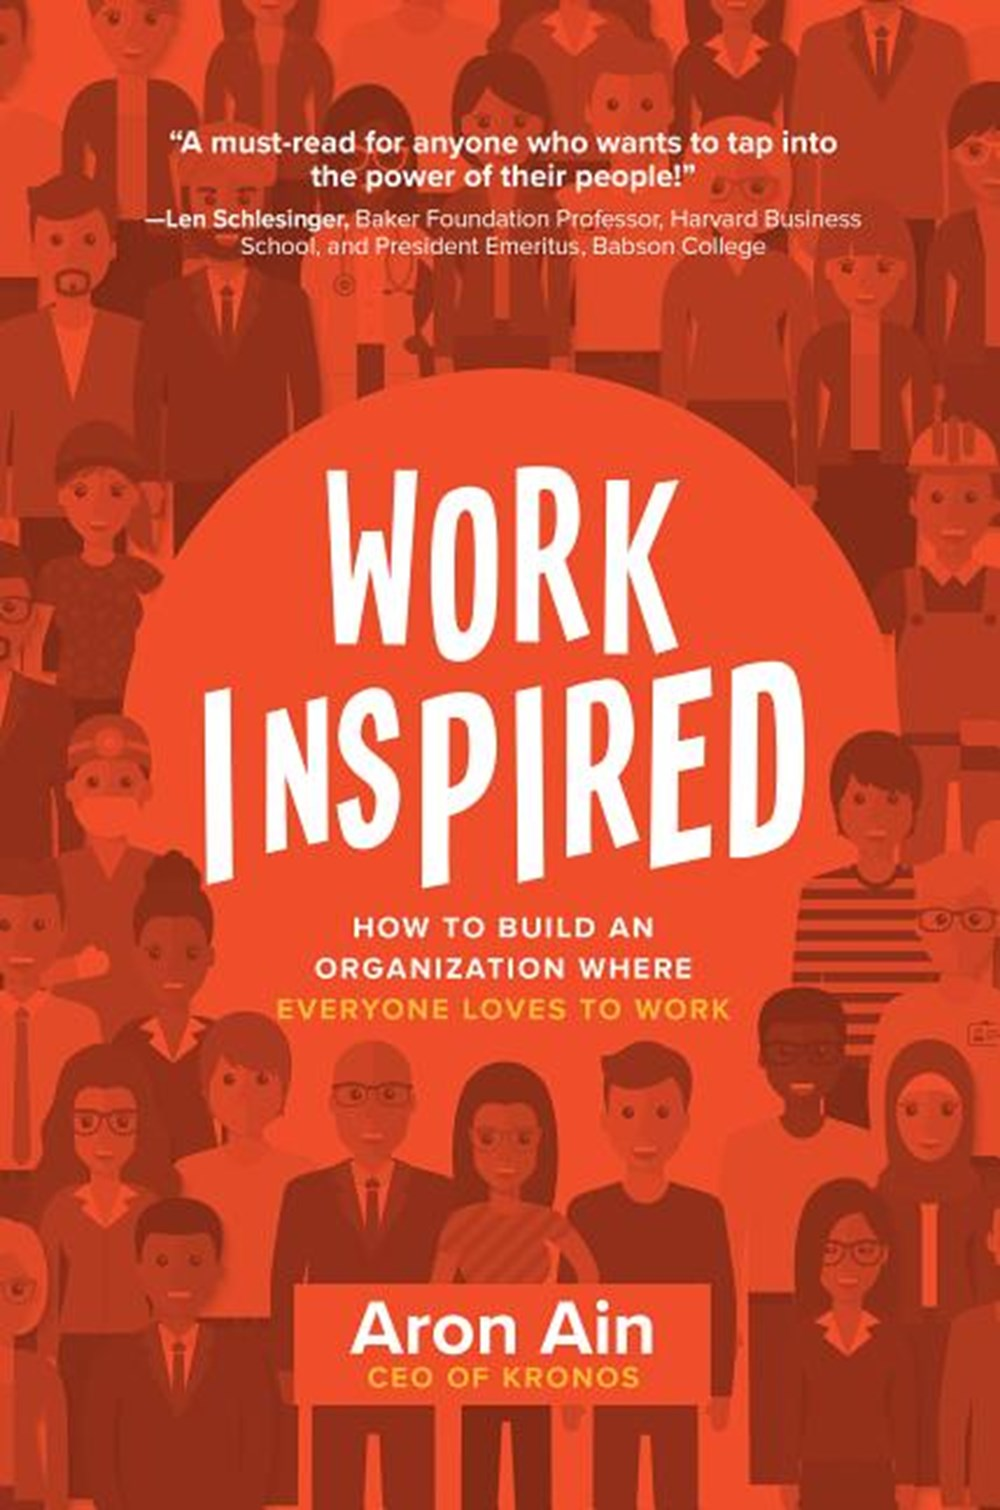 Workinspired How to Build an Organization Where Everyone Loves to Work